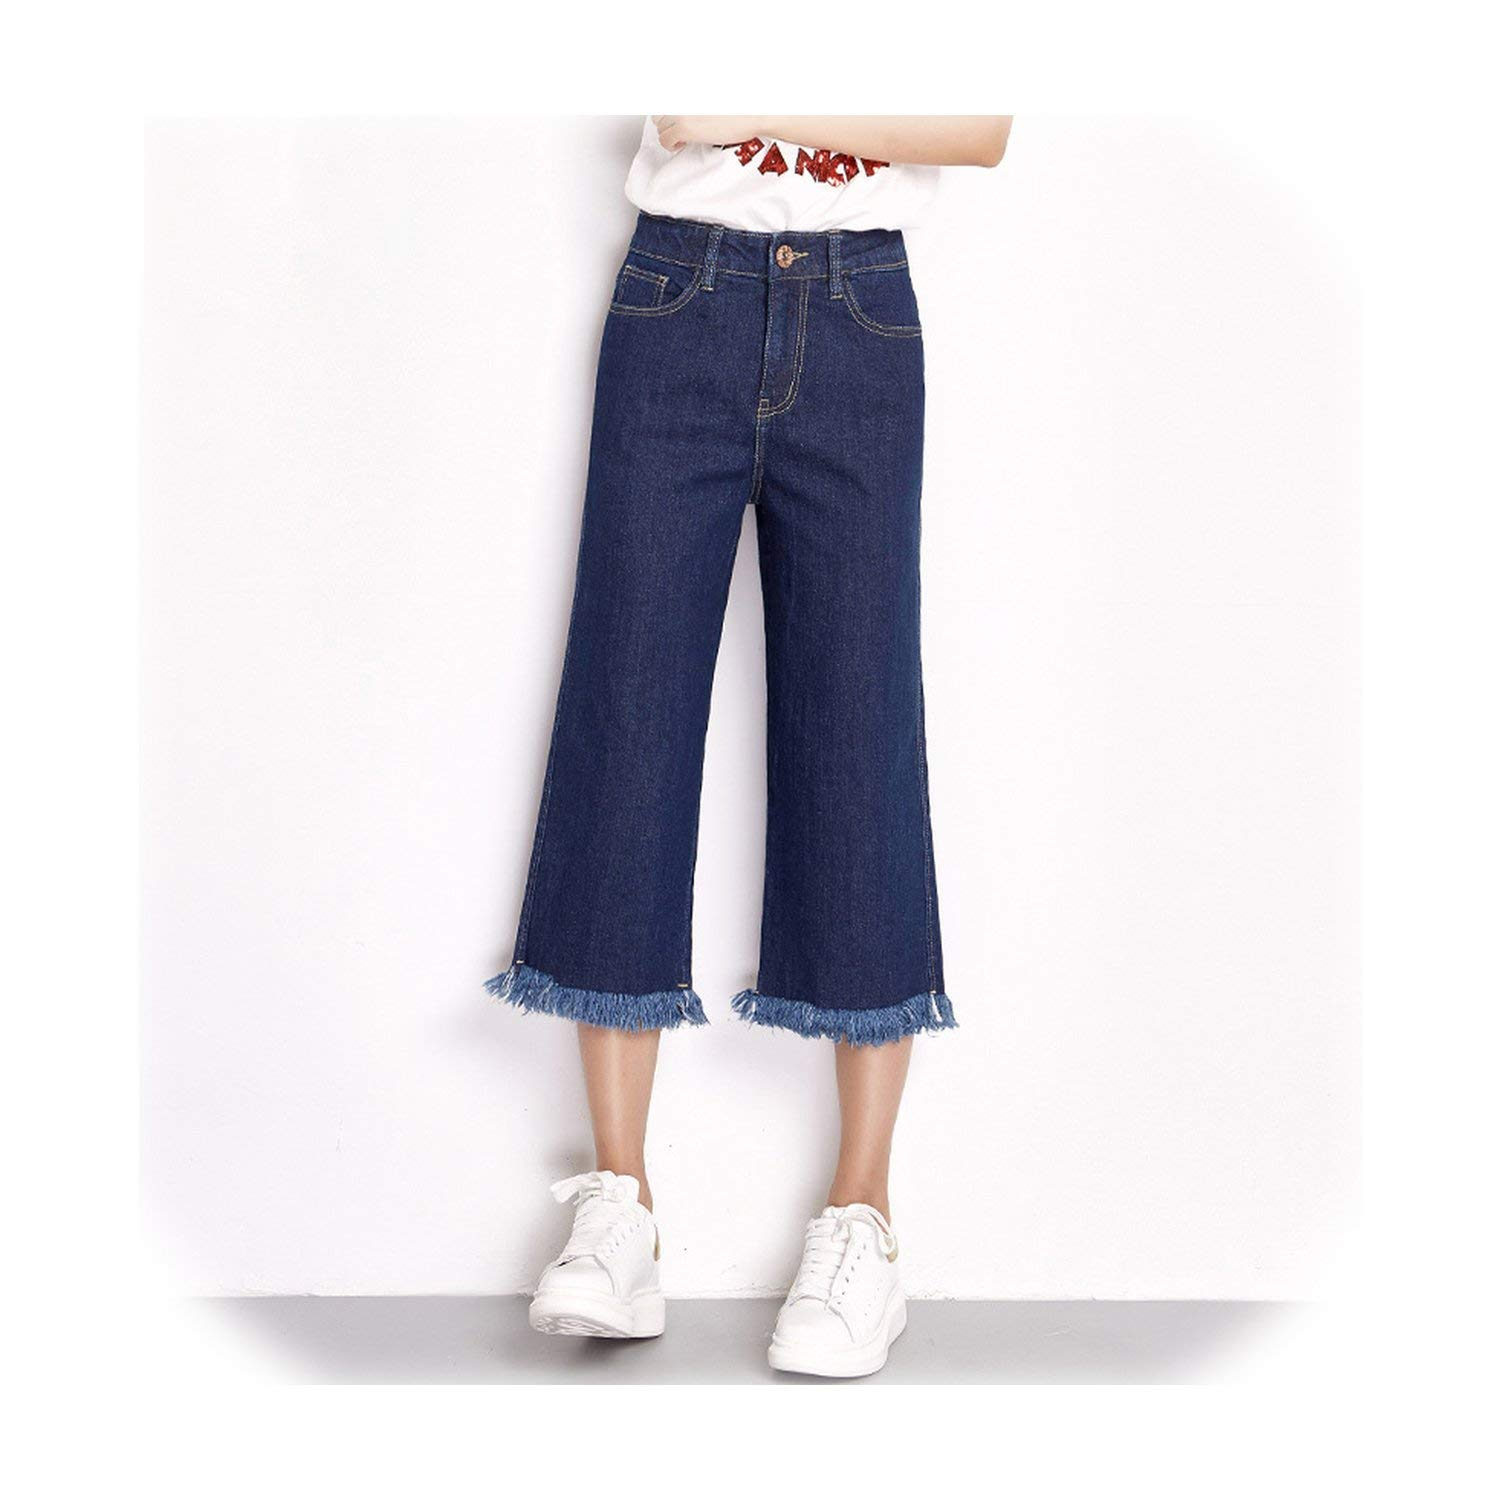 color Fairly Spring Plus Size Solid Tassel Comfortable High Waist Ankle Length Casual Loose Wide Leg Women Jeans